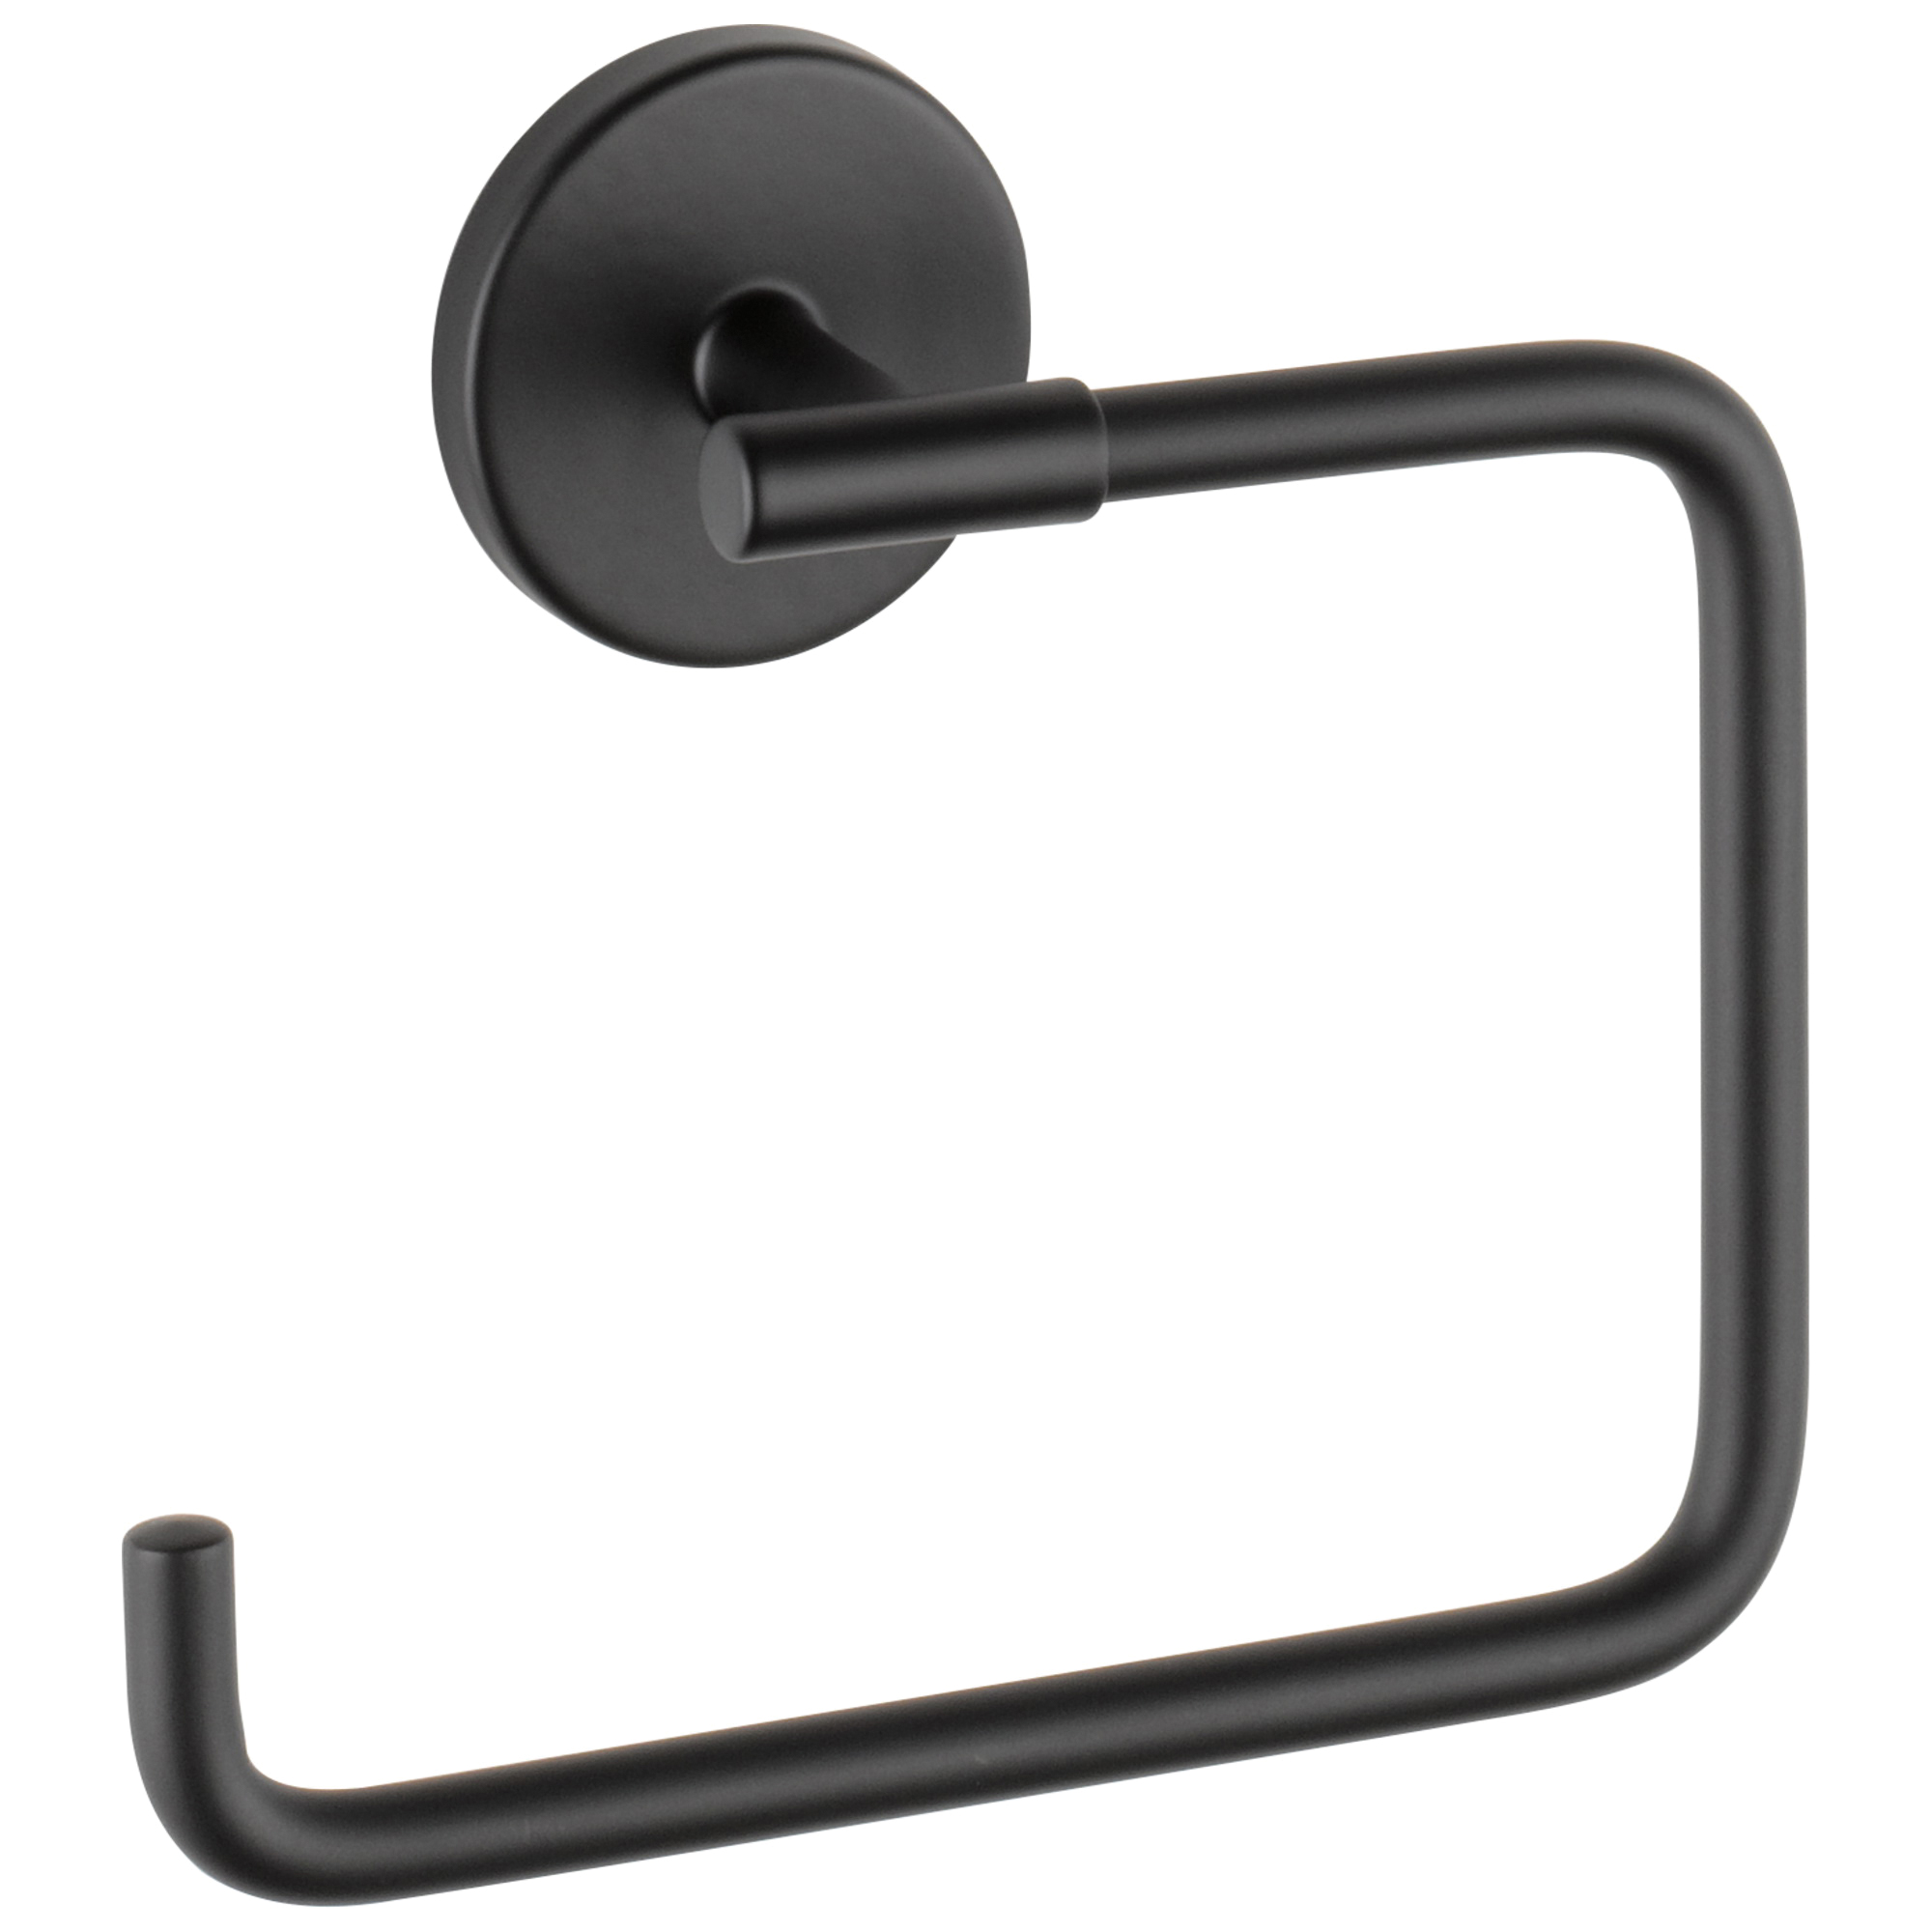 DELTA® 759460-BL Trinsic® Towel Ring, 6-13/32 in L Bar, 2 in OAD x 5-11/16 in OAH, Matte Black, Import